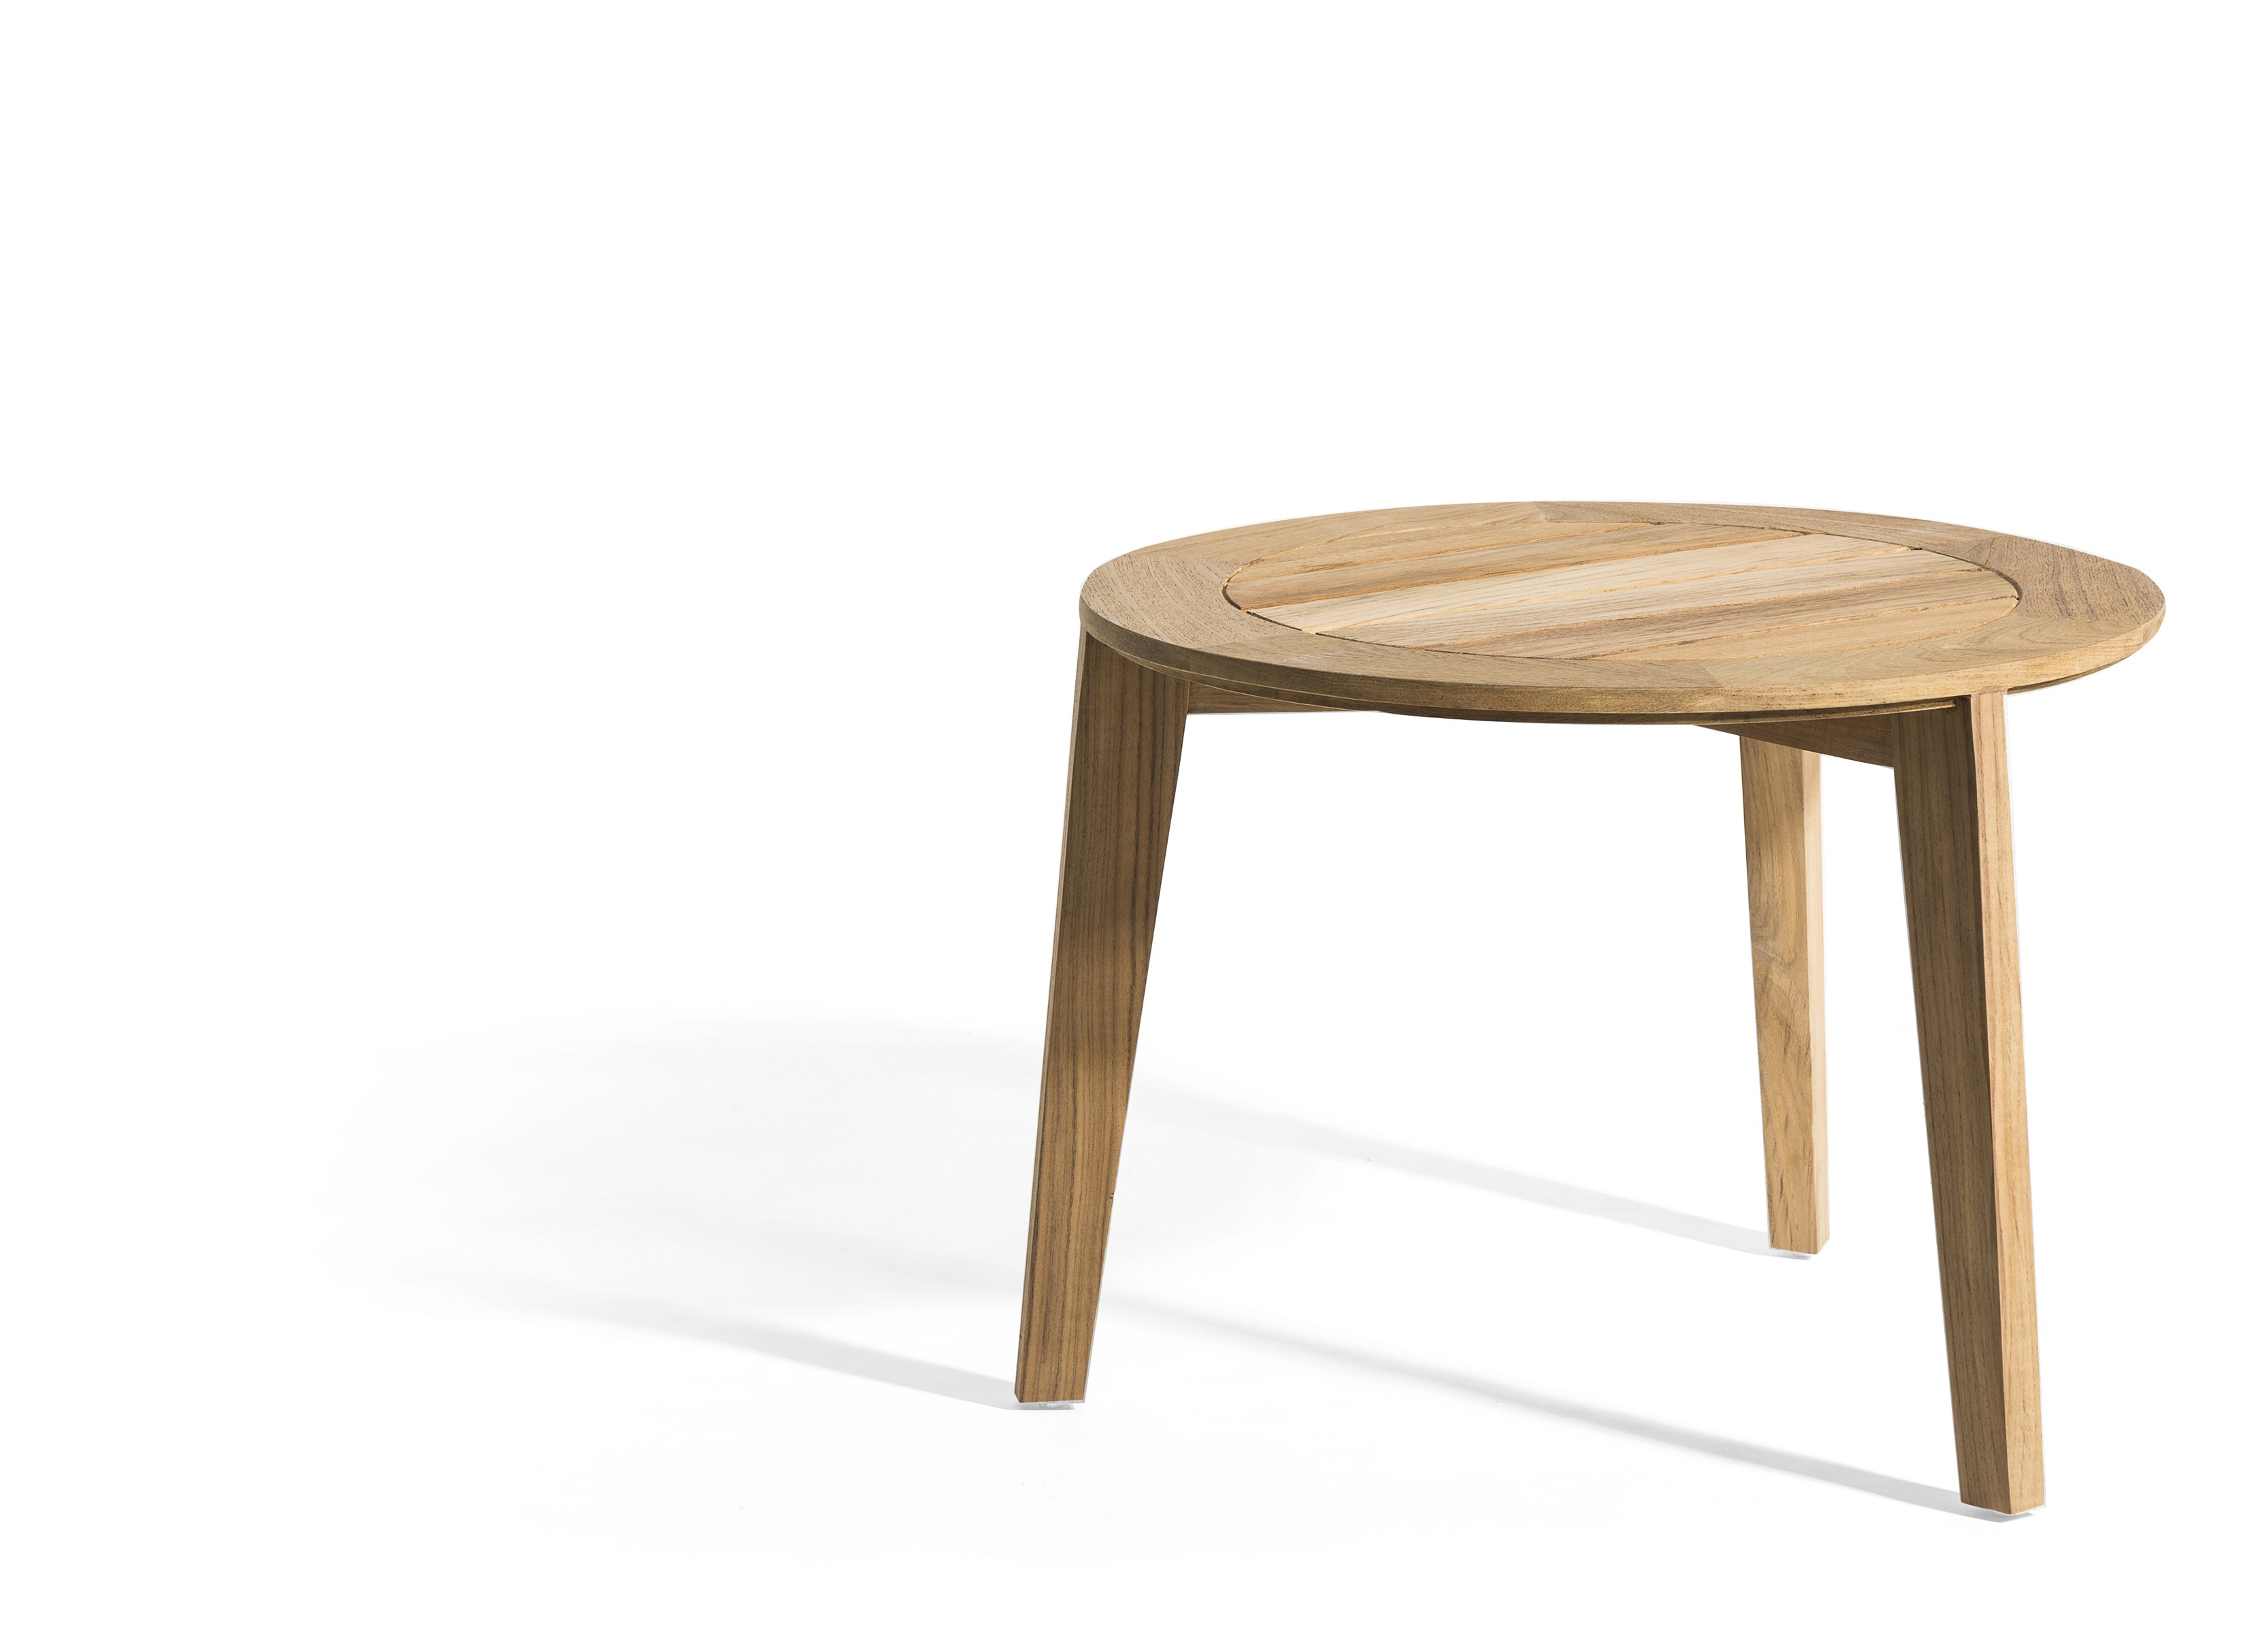 Attol Teak Coffee Table By Oasiq Design Hugo De Ruiter